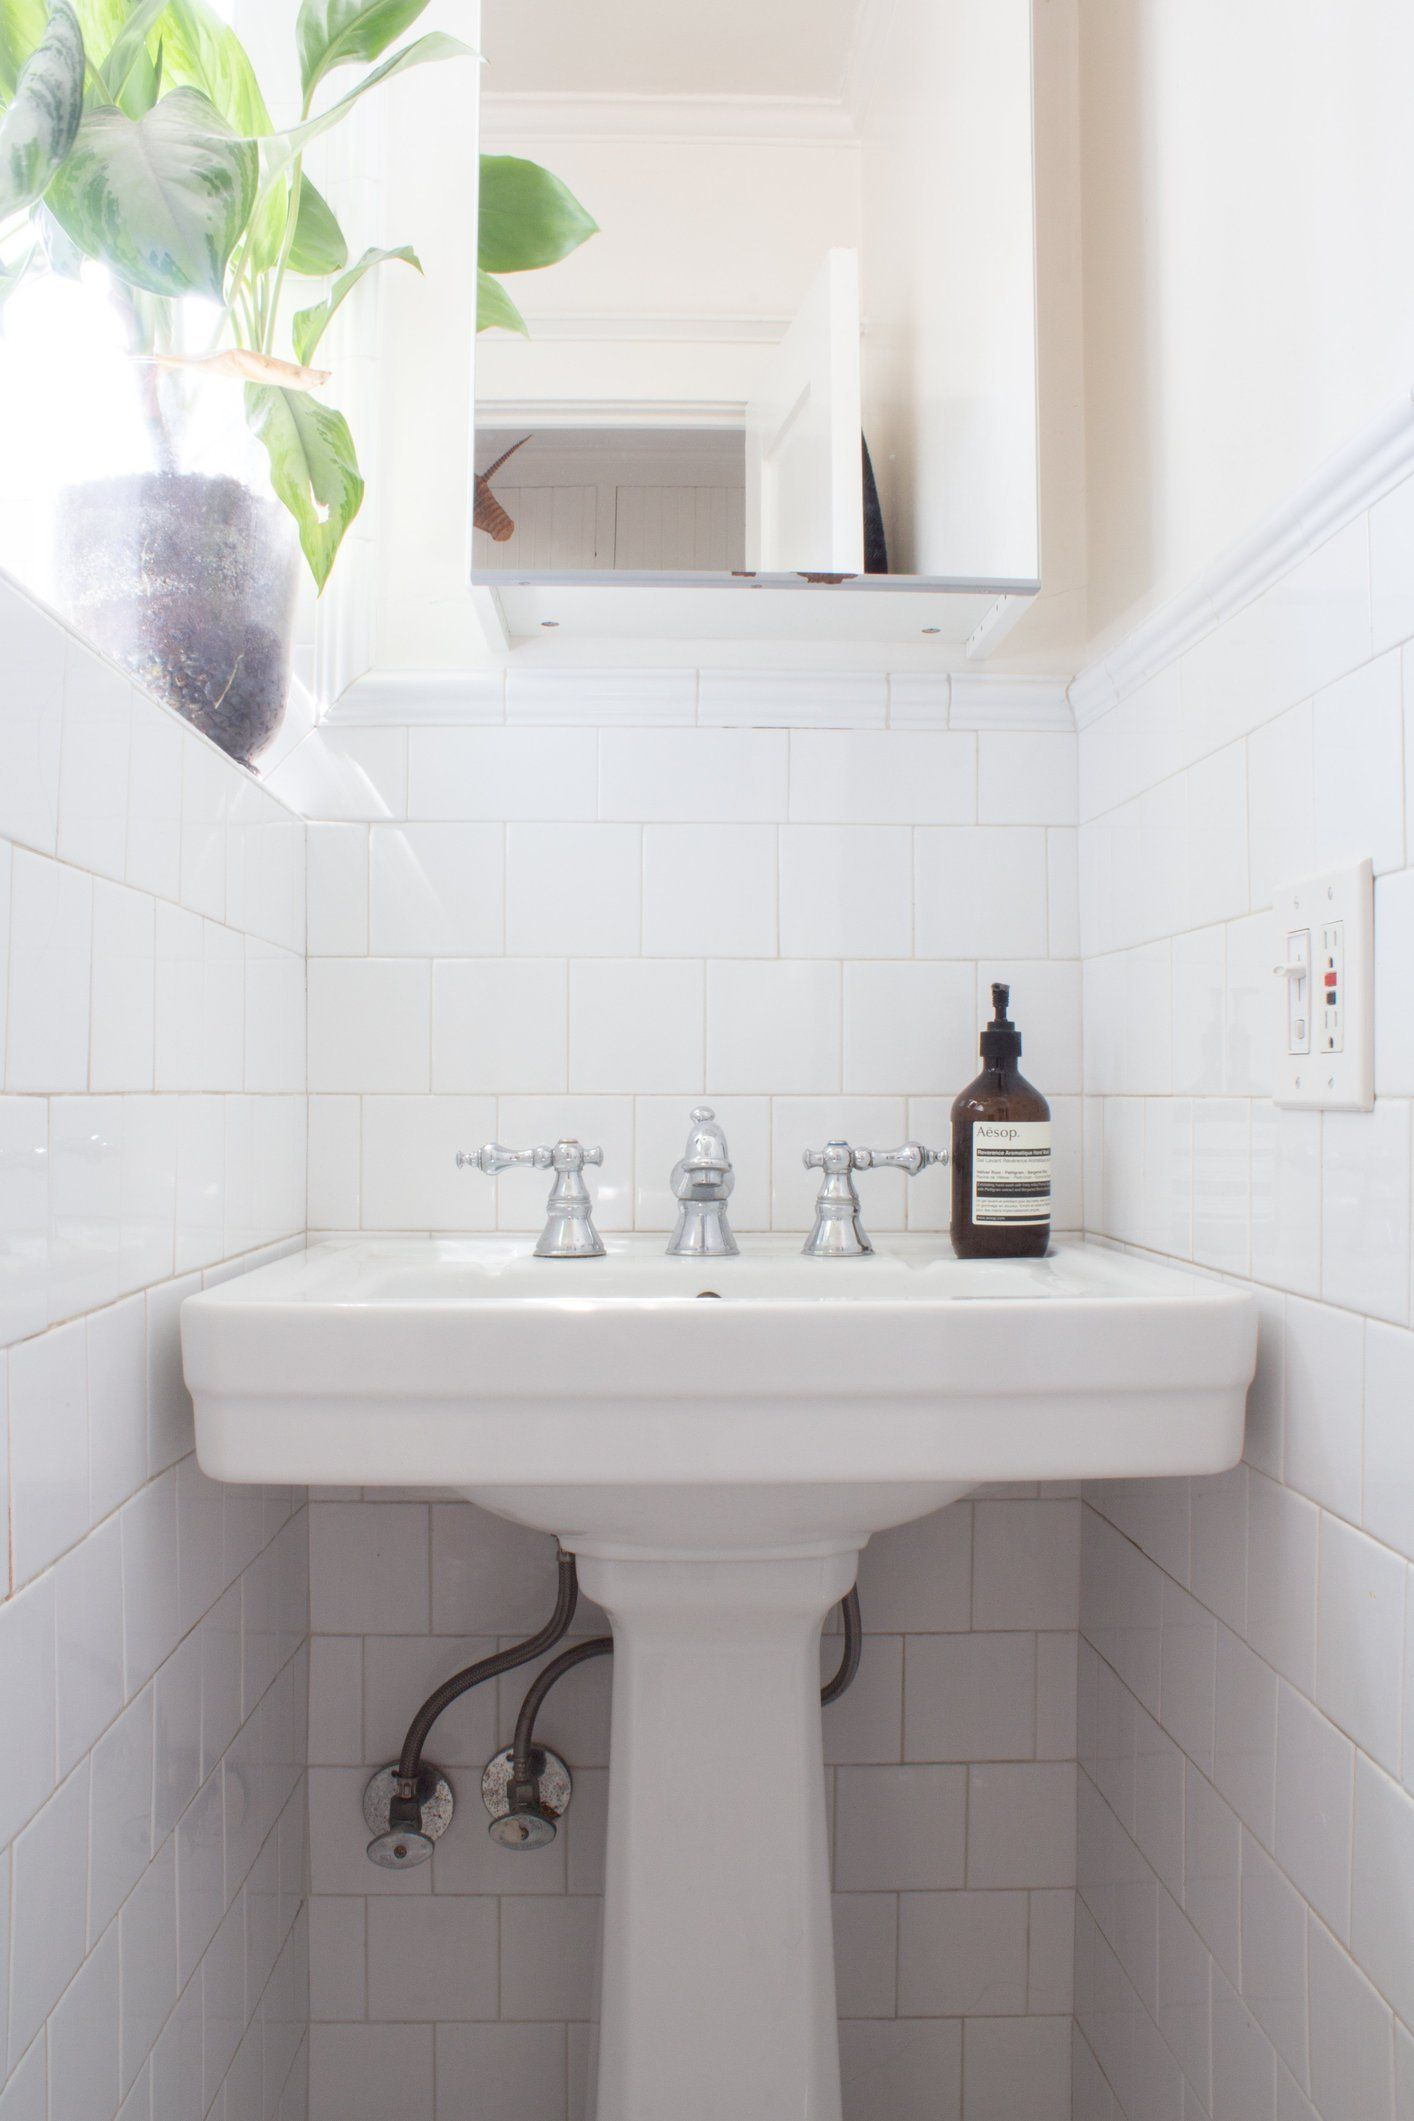 Inexpensive Ideas for Organizing a Small Bathroom   Pinterest ...